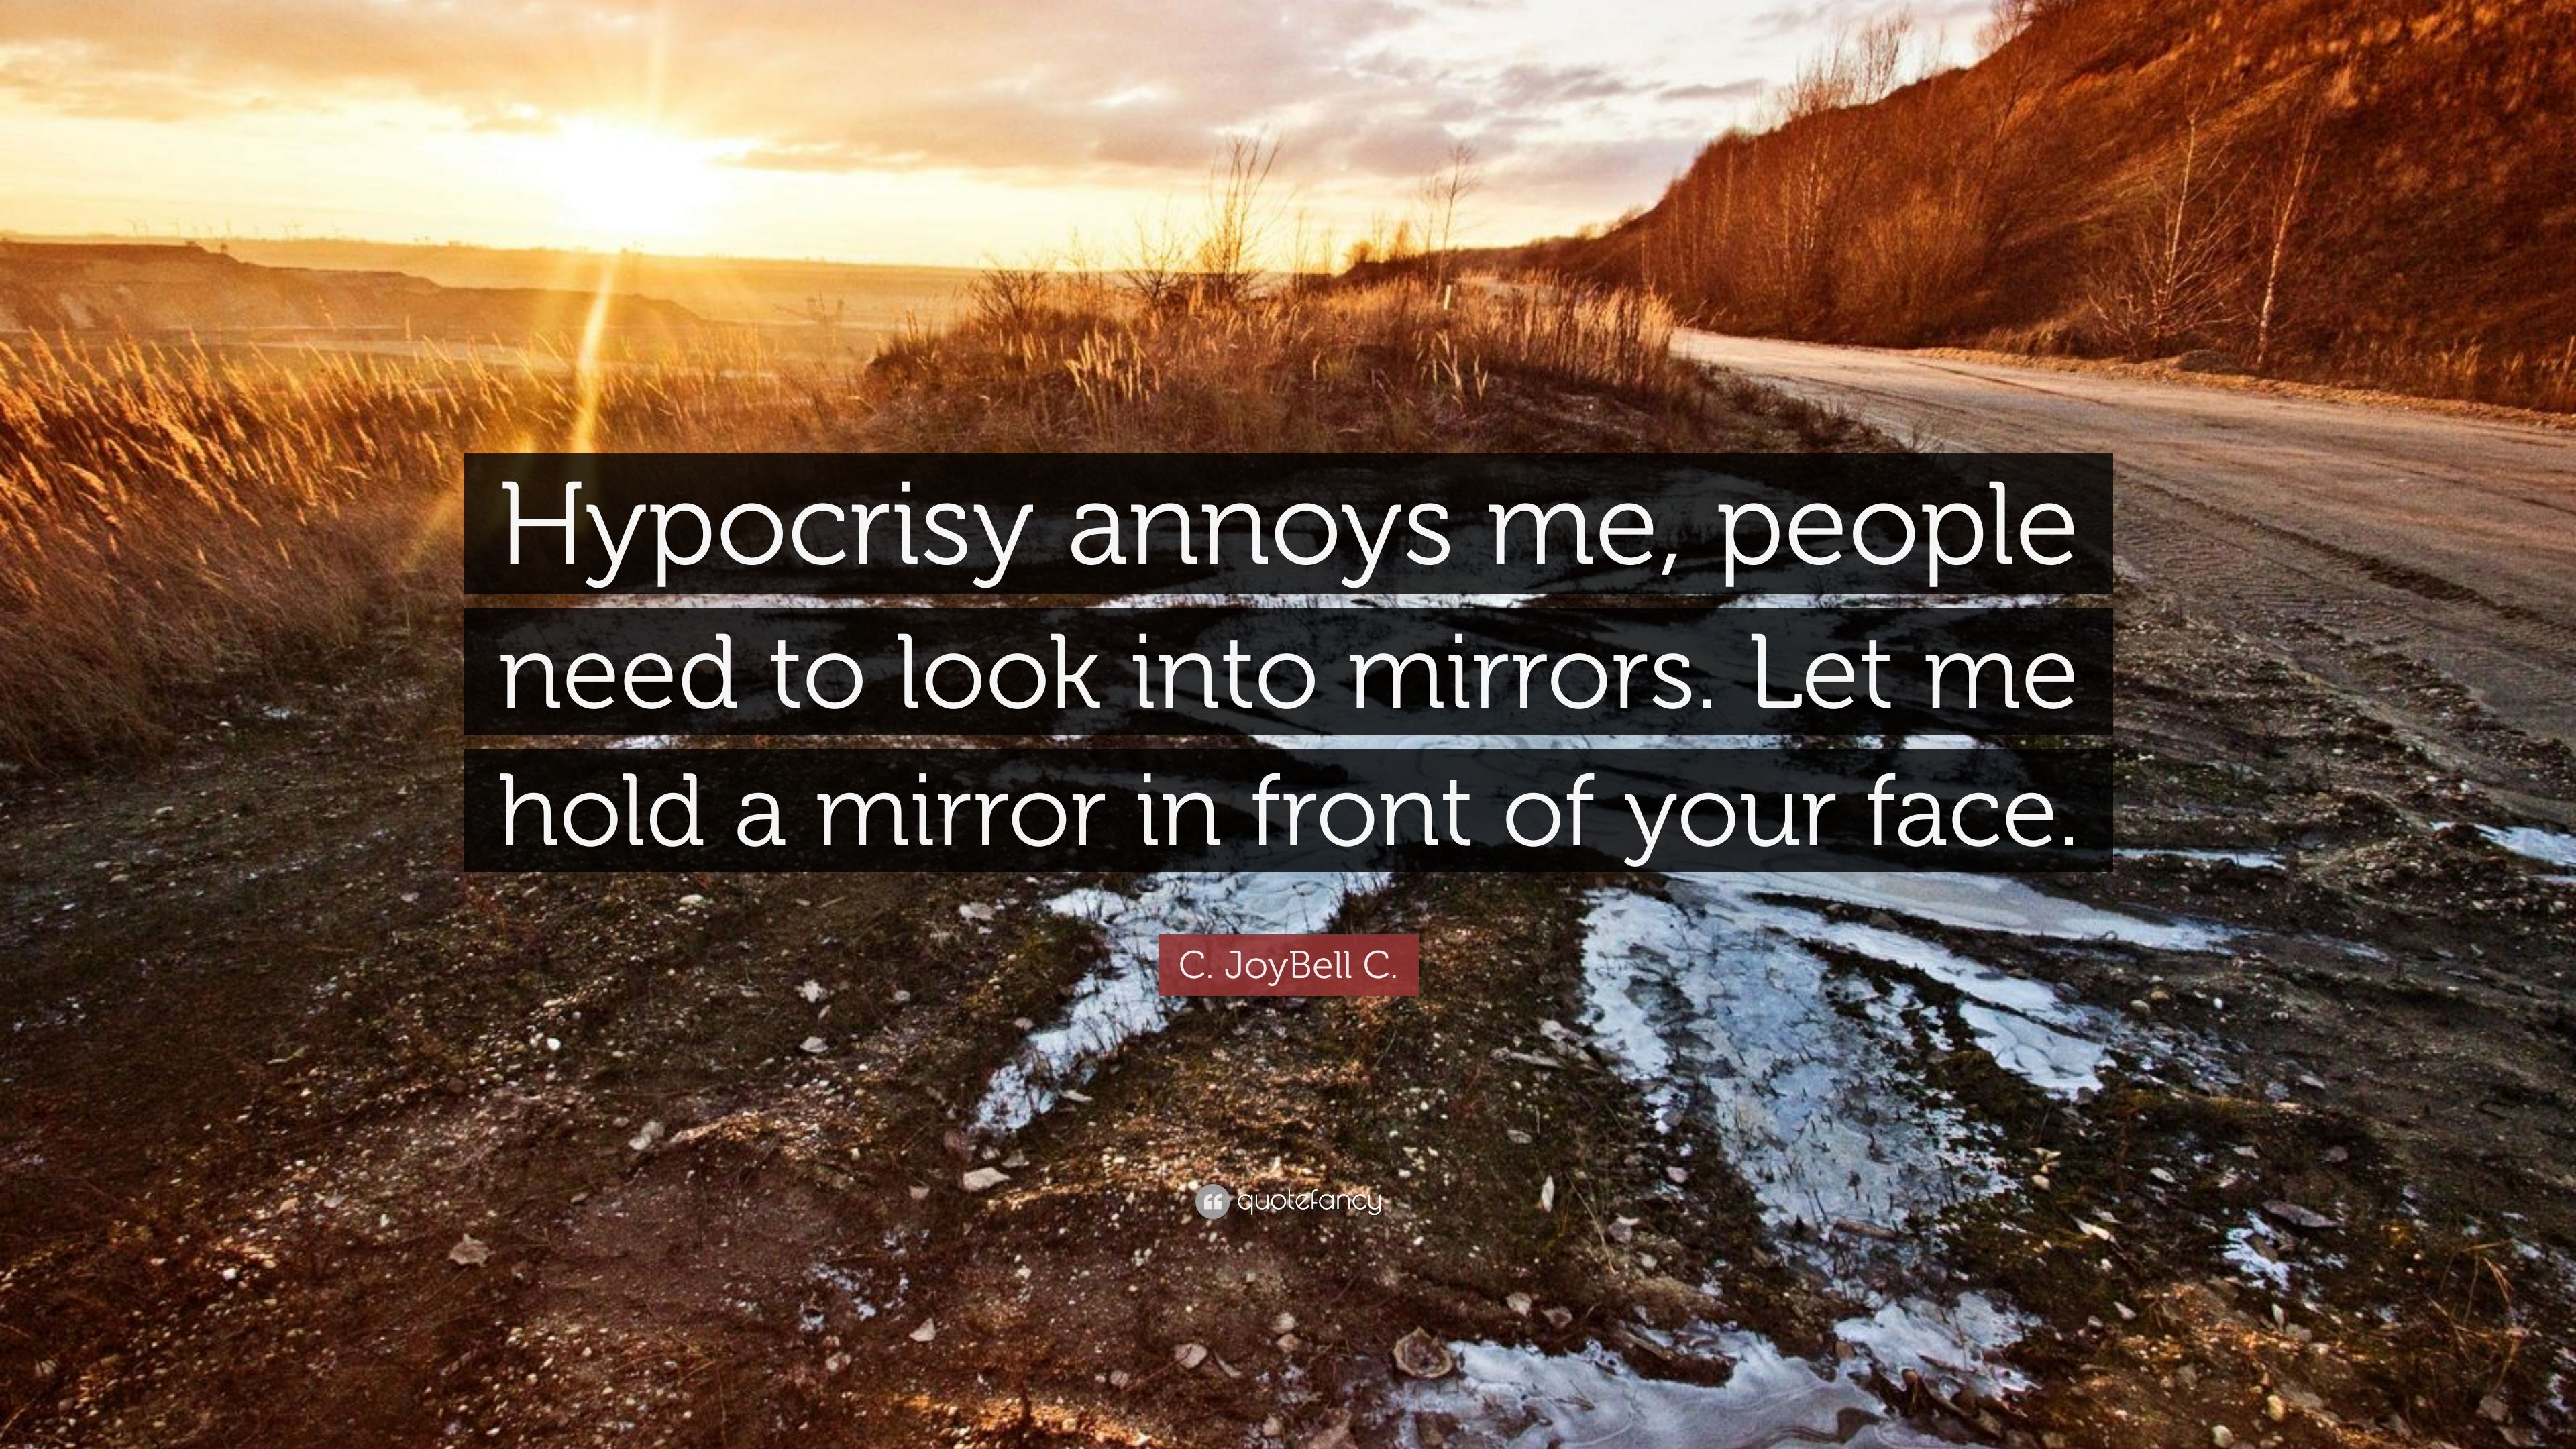 C Joybell C Quote Hypocrisy Annoys Me People Need To Look Into